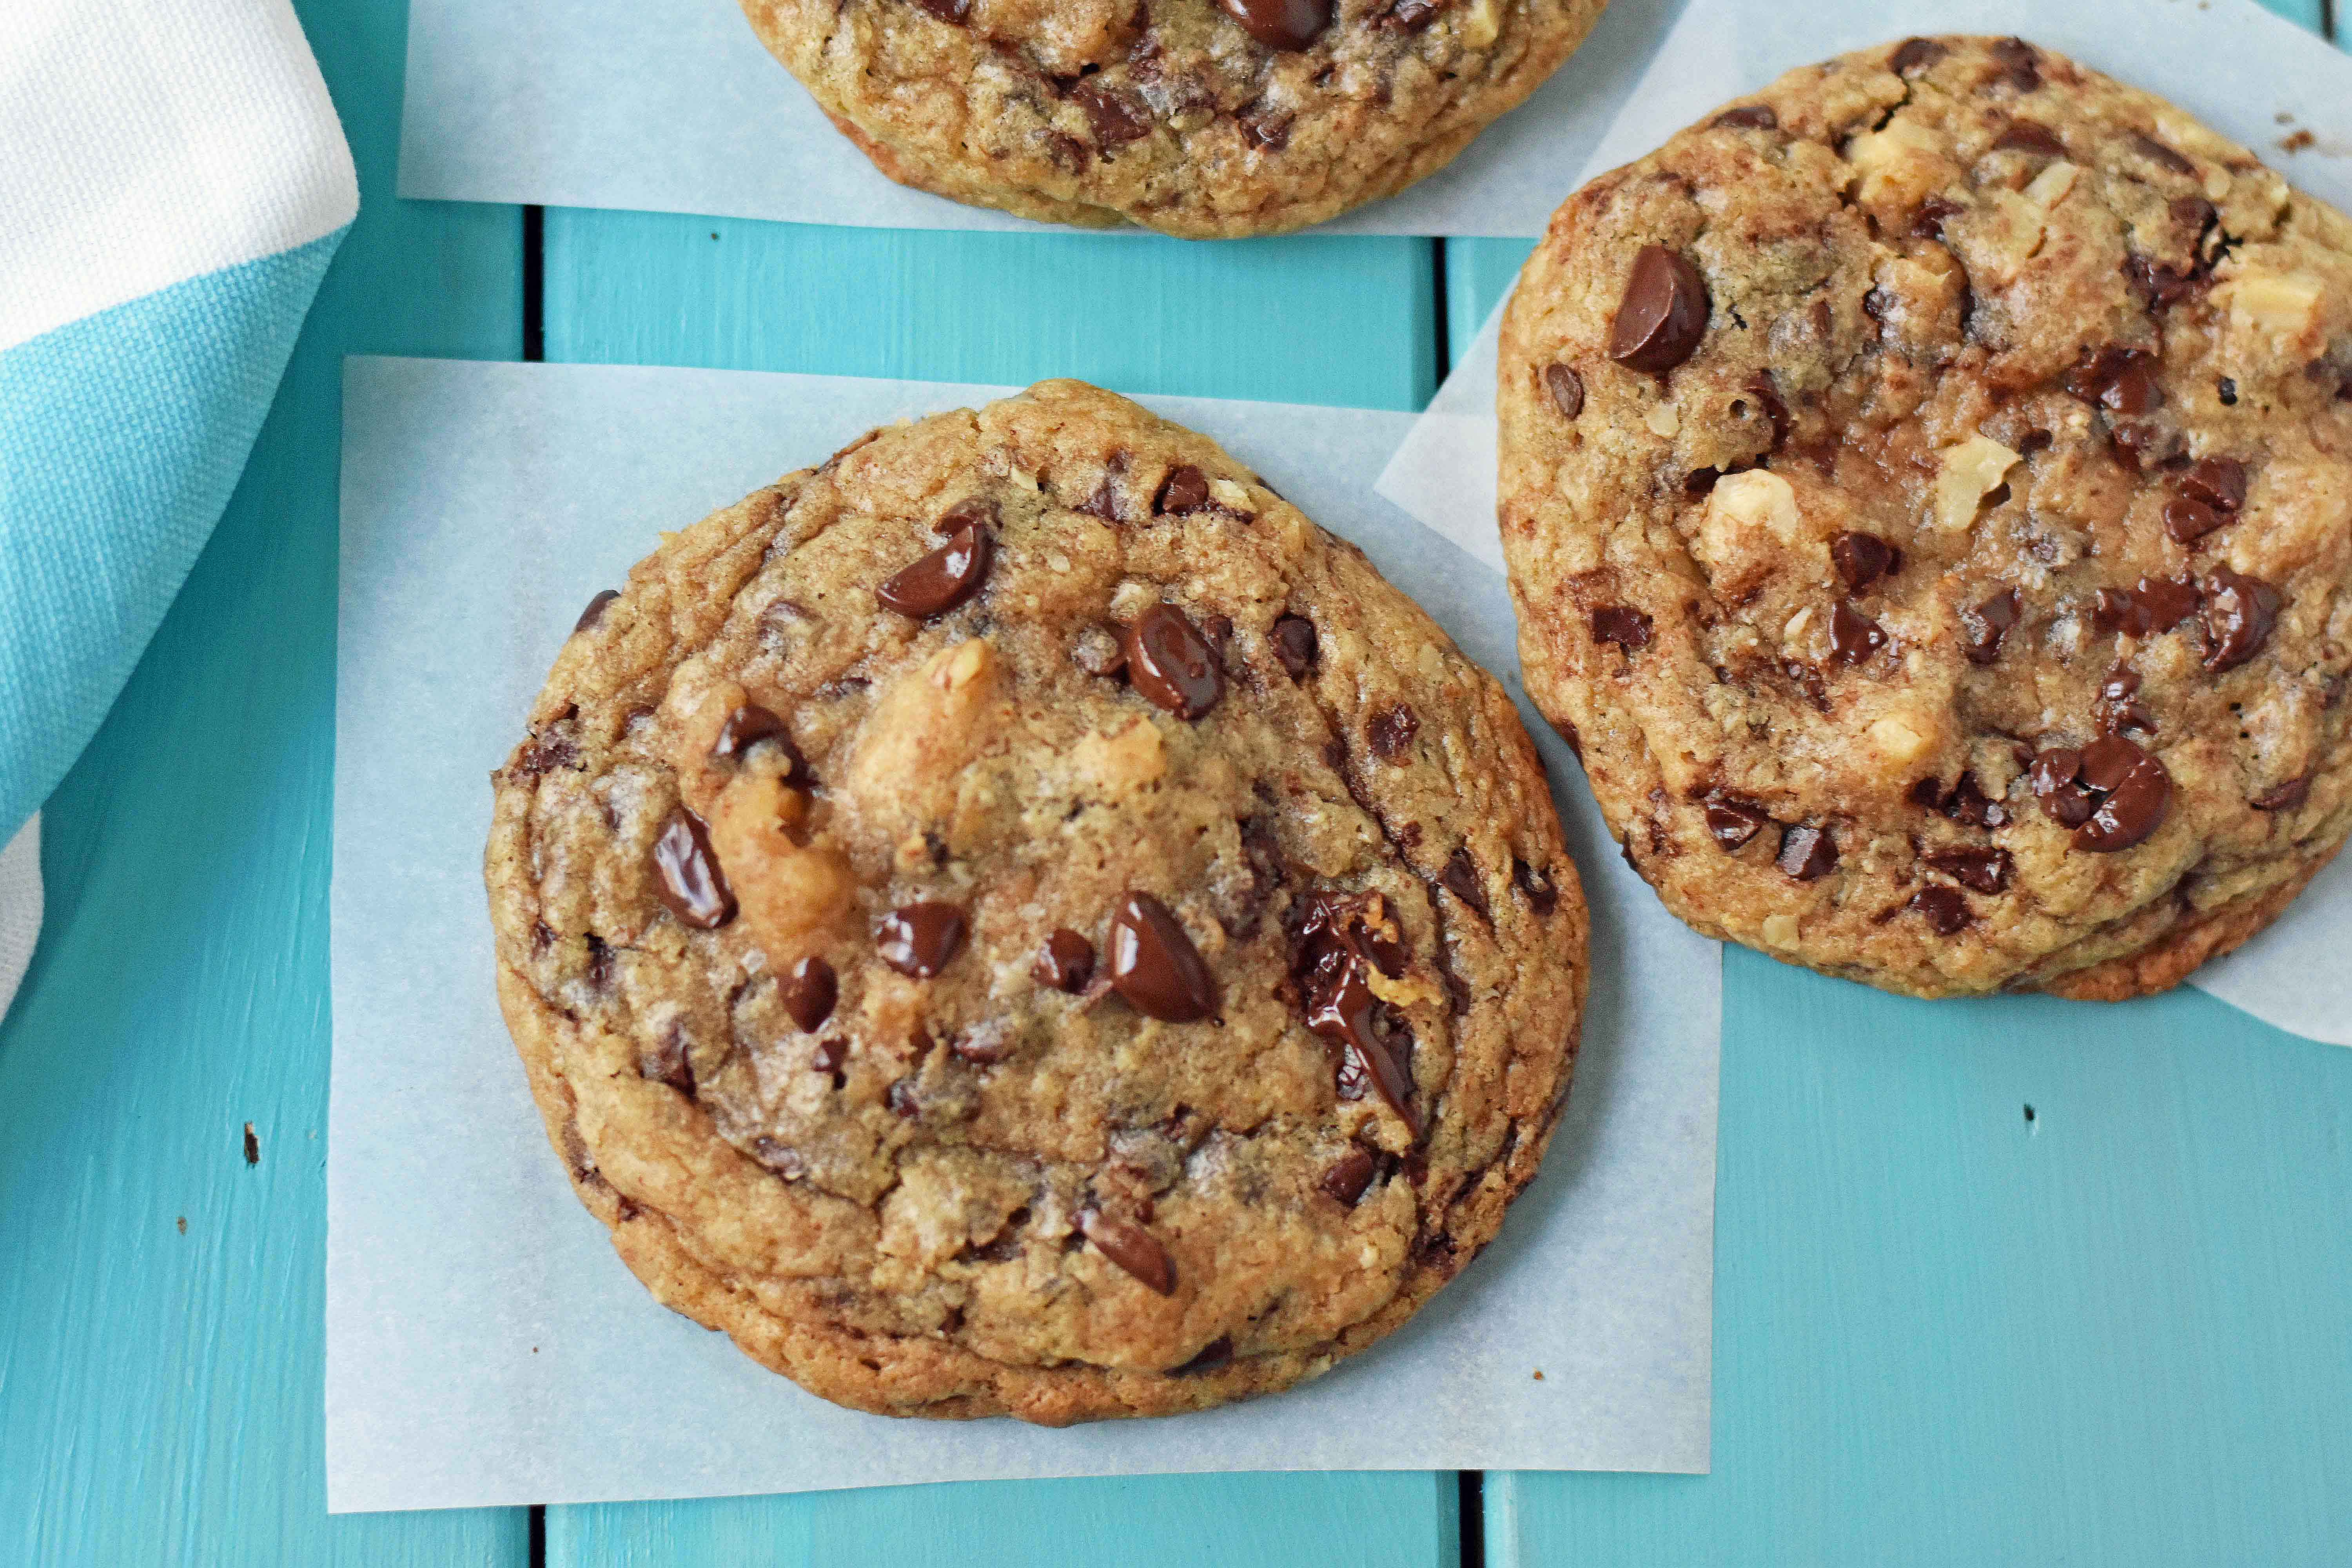 Mel S Kitchen Cafe Chocolate Chip Cookies